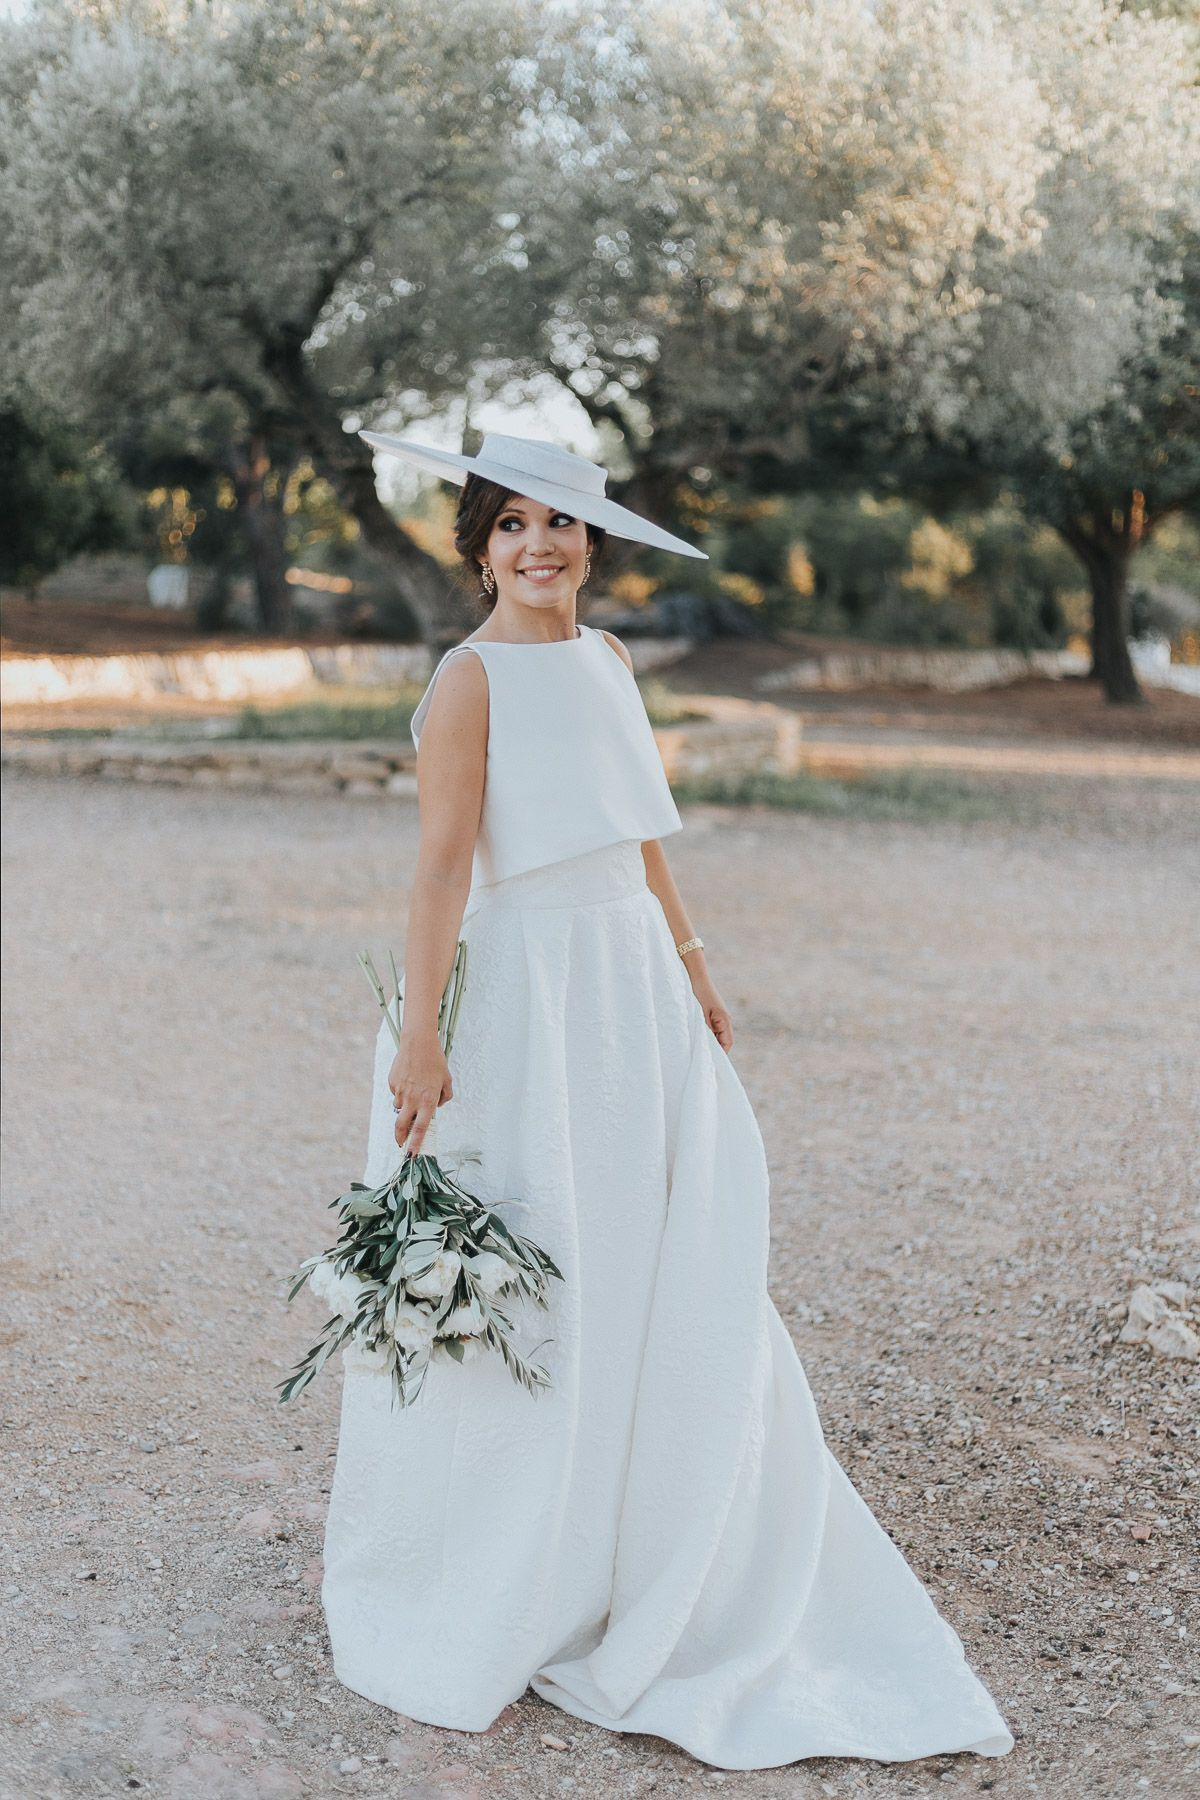 Susana from Spain - JESUS PEIRO bride | JP REAL BRIDES | Pinterest ...